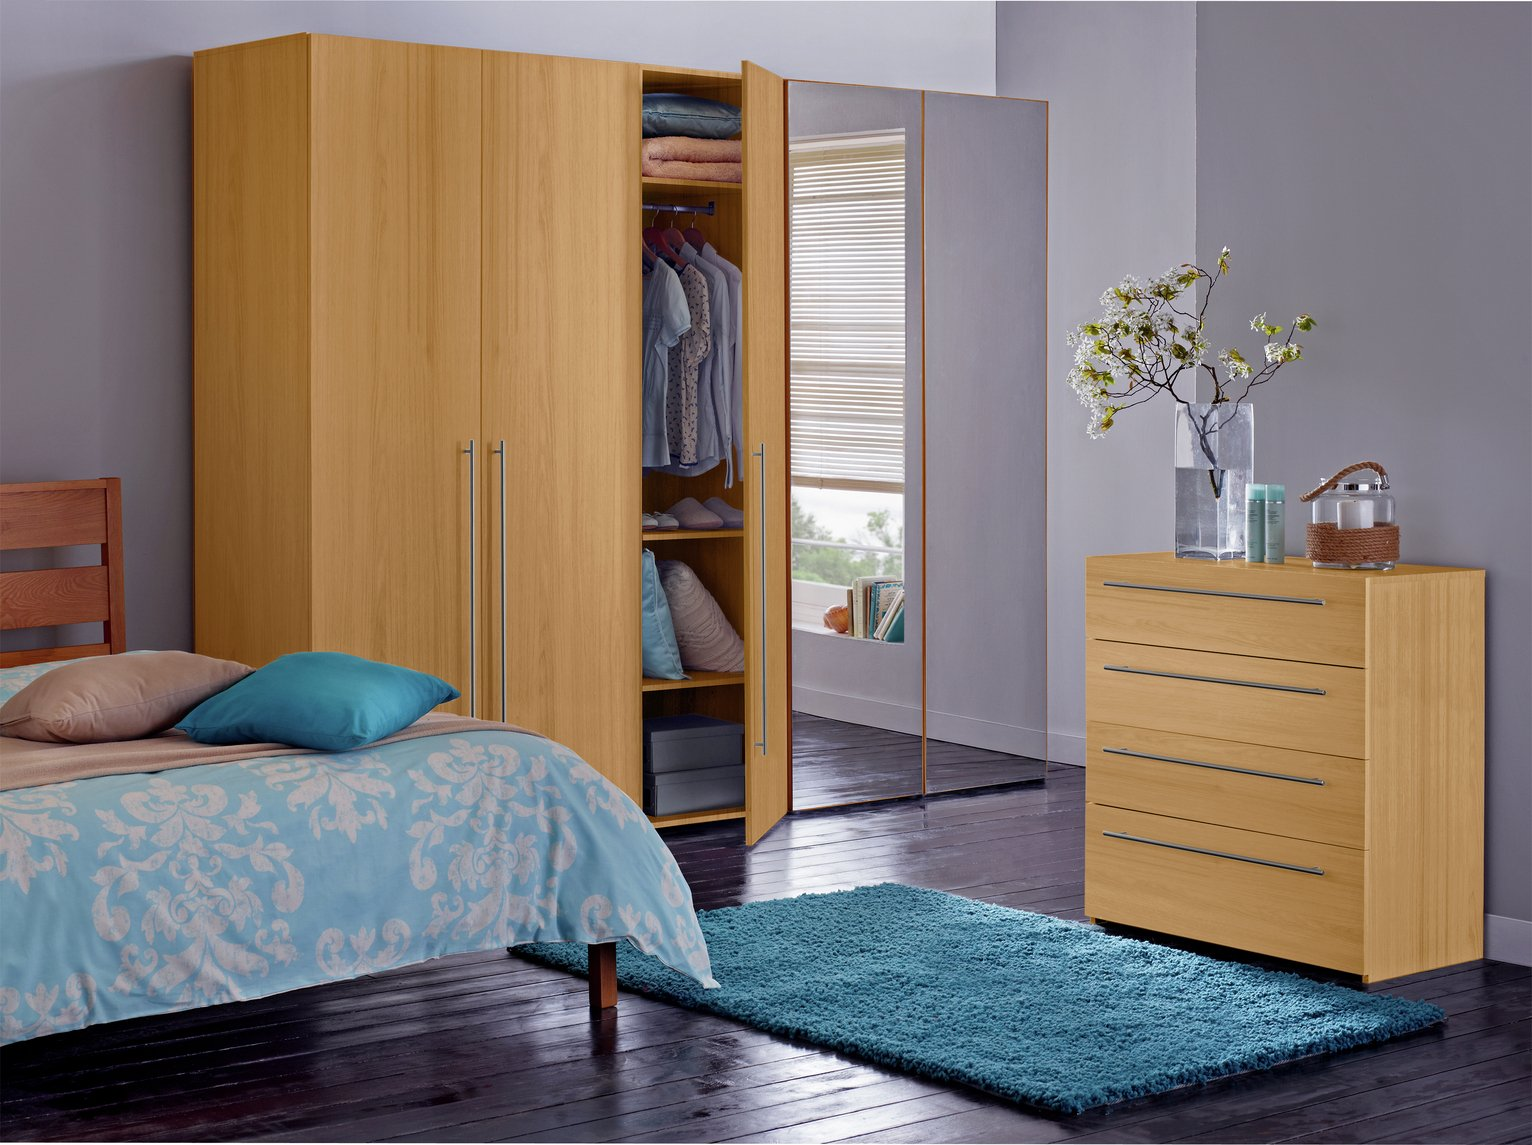 Hygena Bedroom Furniture Stockists Indiepedia Iphone Wallpapers Free Beautiful  HD Wallpapers, Images Over 1000+ [getprihce.gq]